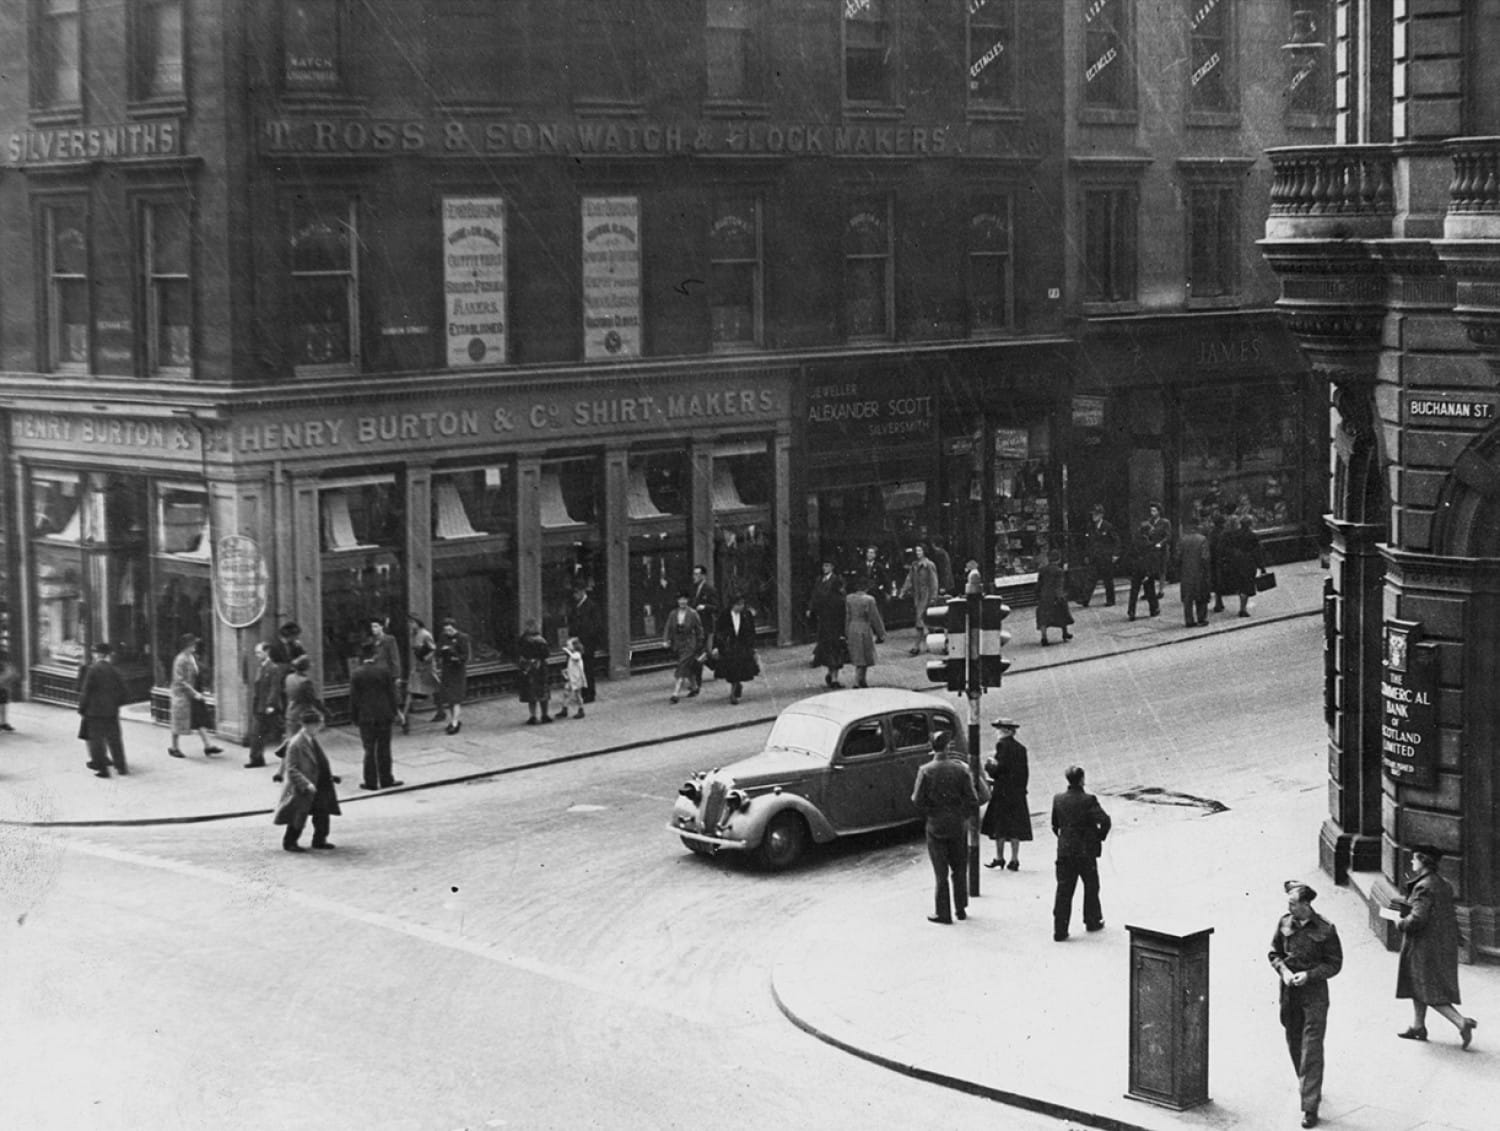 Henry Burton & Co, on the corner of Buchanan and Gordon Street, 1940 (Glasgow City Archives)